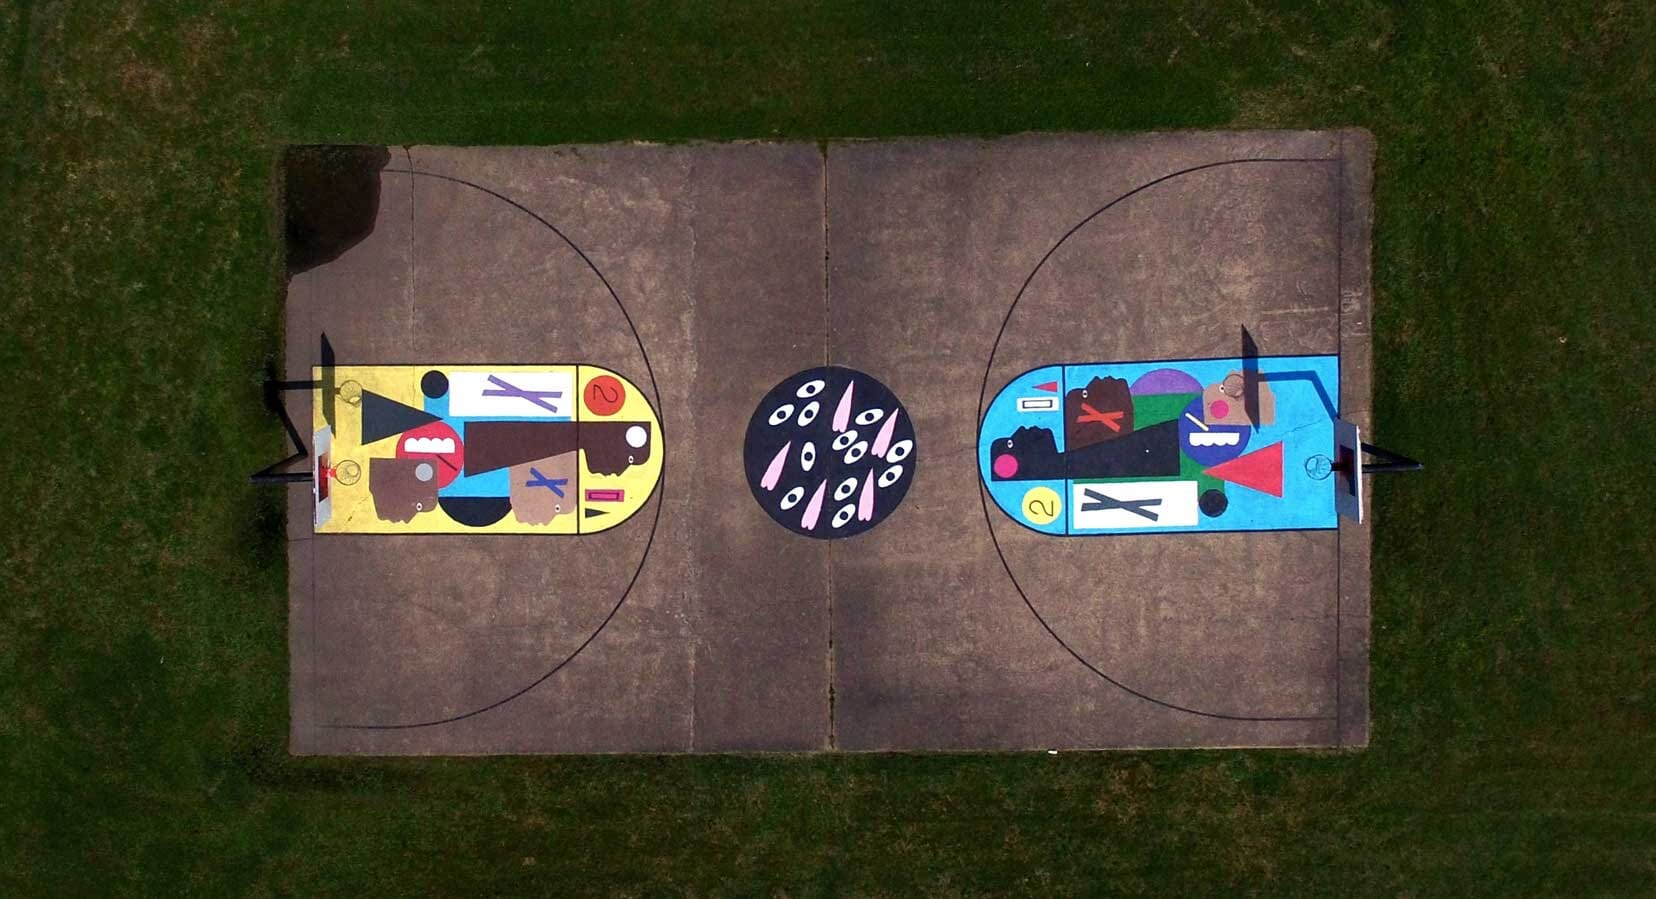 Project Backboard Transform Forgotten Courts Into Large-Scale Art